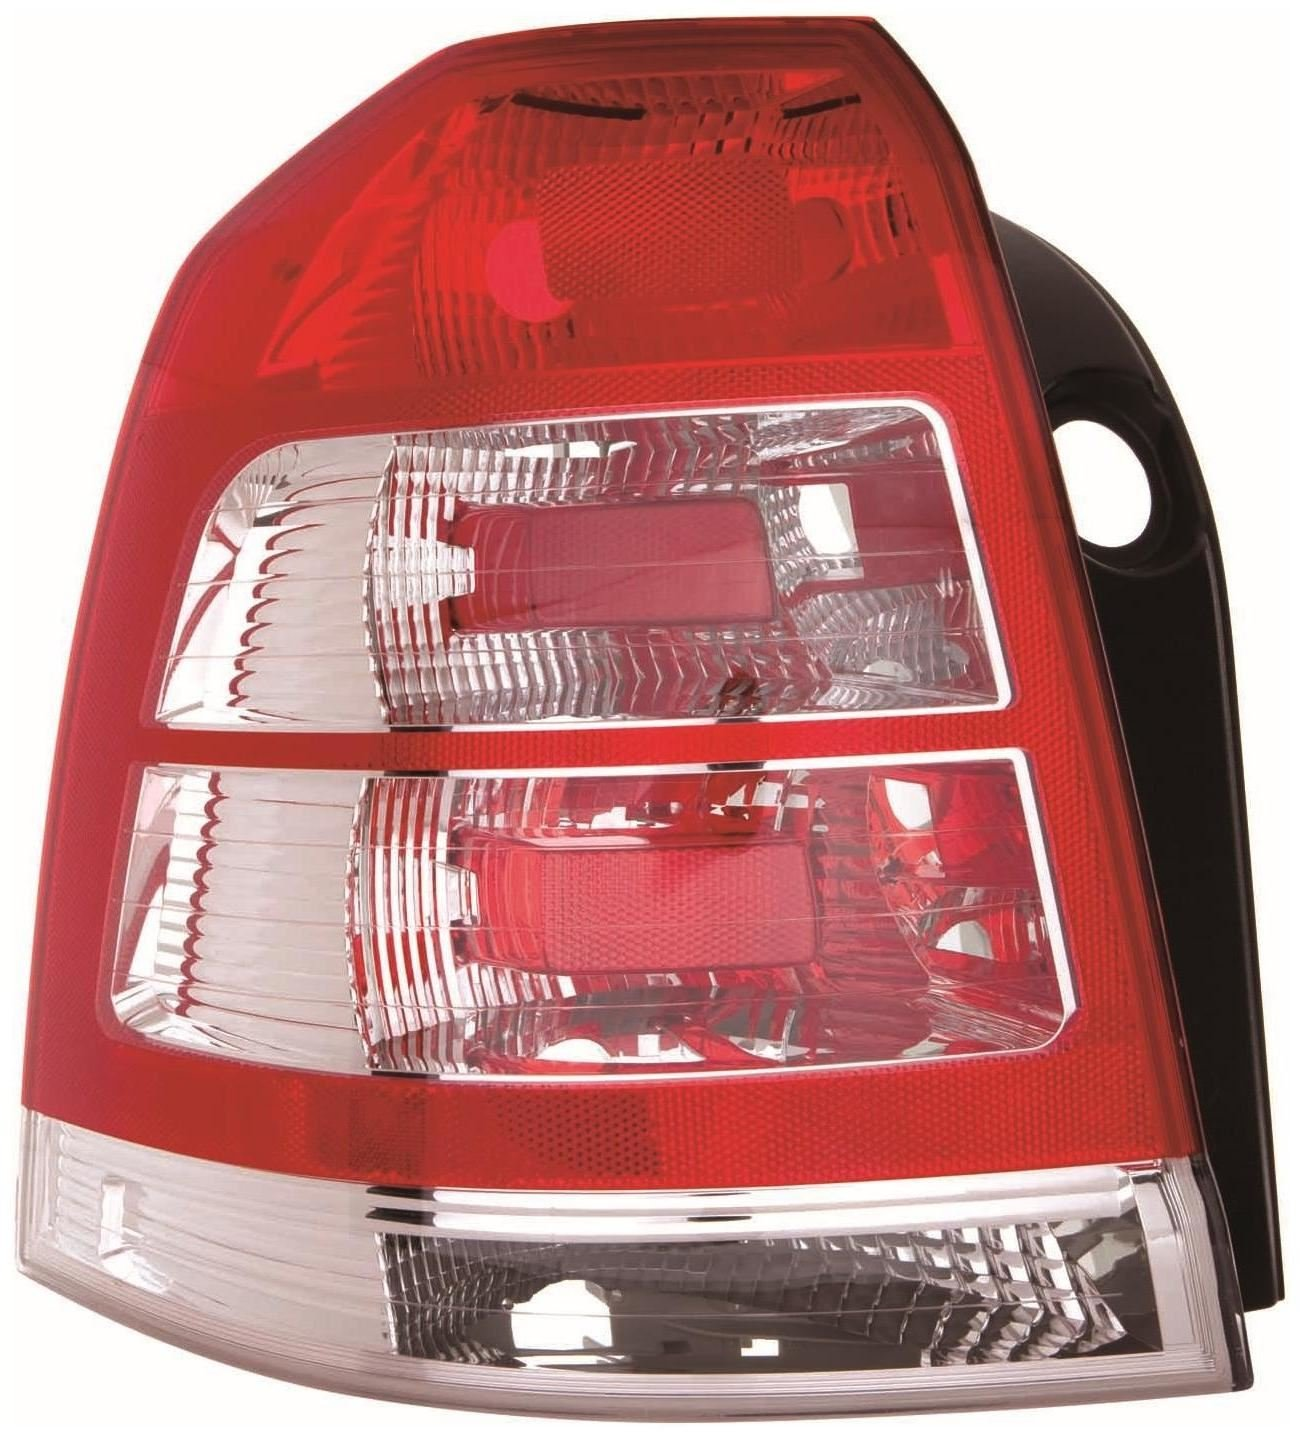 Rear Light Unit Driver/'s Side Rear Lamp Unit